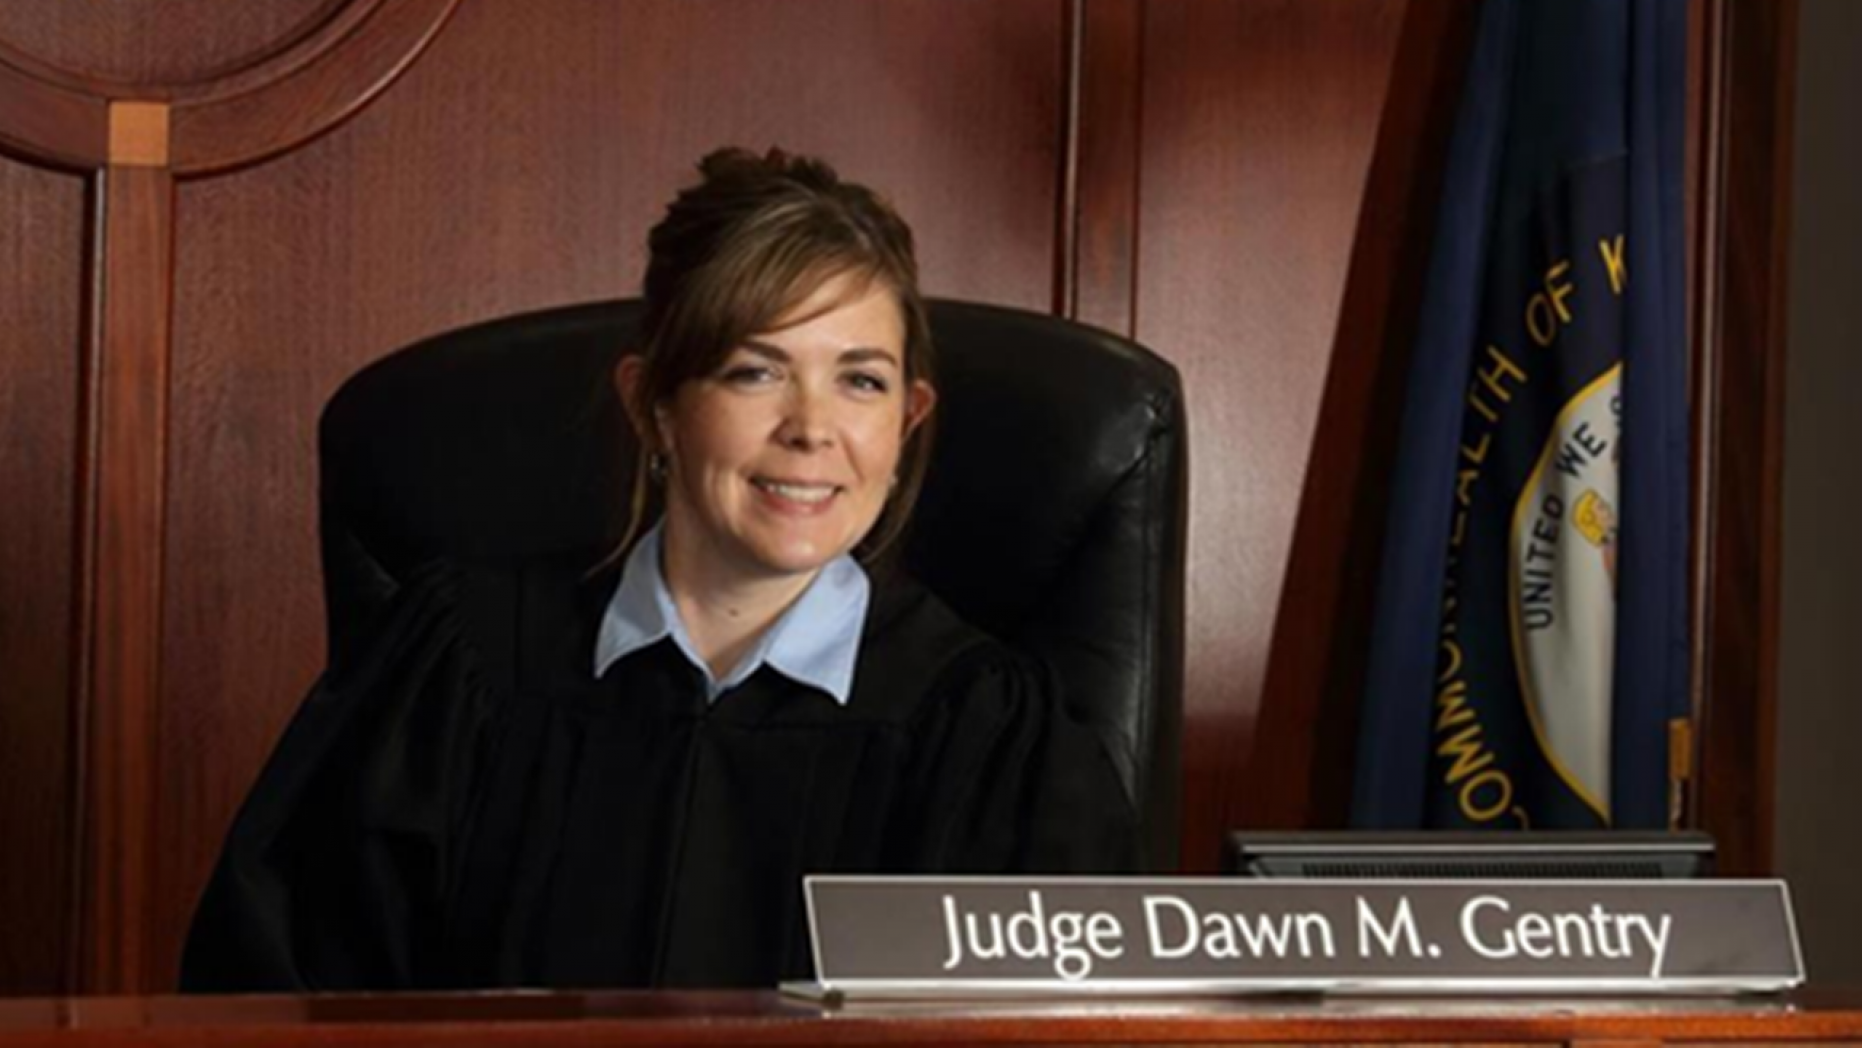 Judge Dawn Gentry, of the Kenton County Family Court, faces nine misconduct-related charges stemming from an anonymous complaint in November.